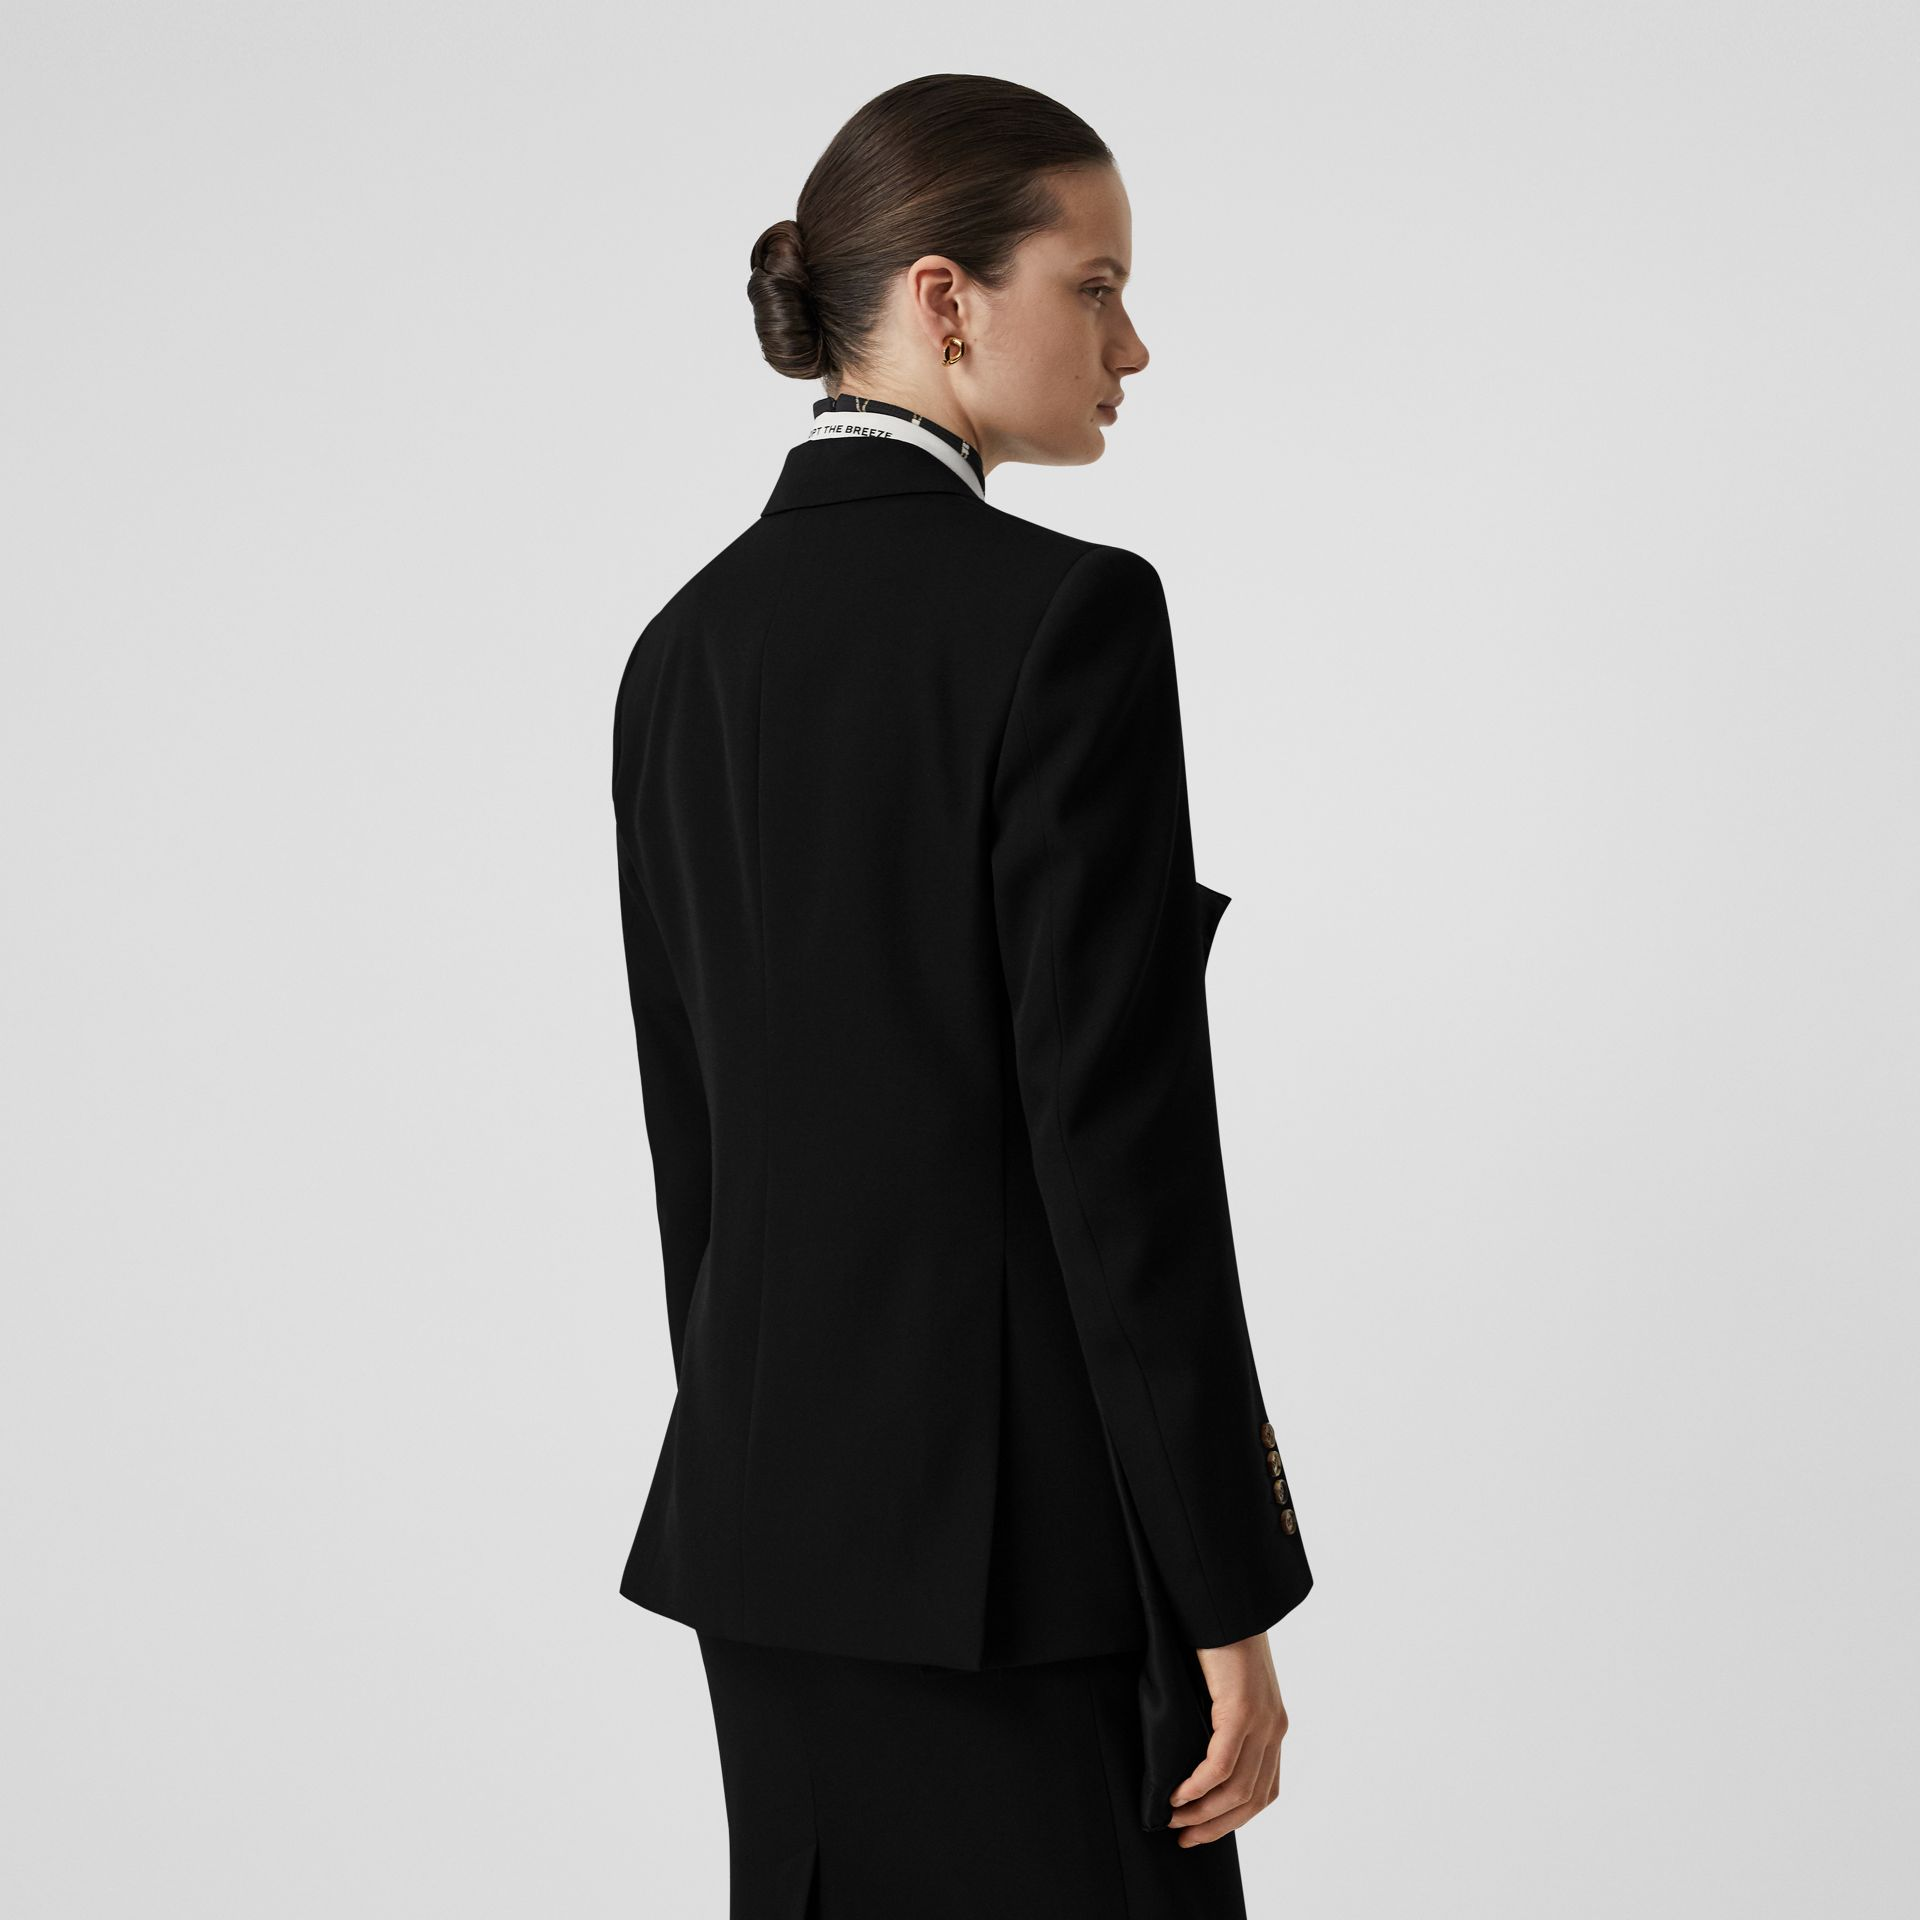 Logo Panel Detail Wool Tailored Jacket in Black - Women | Burberry - gallery image 2